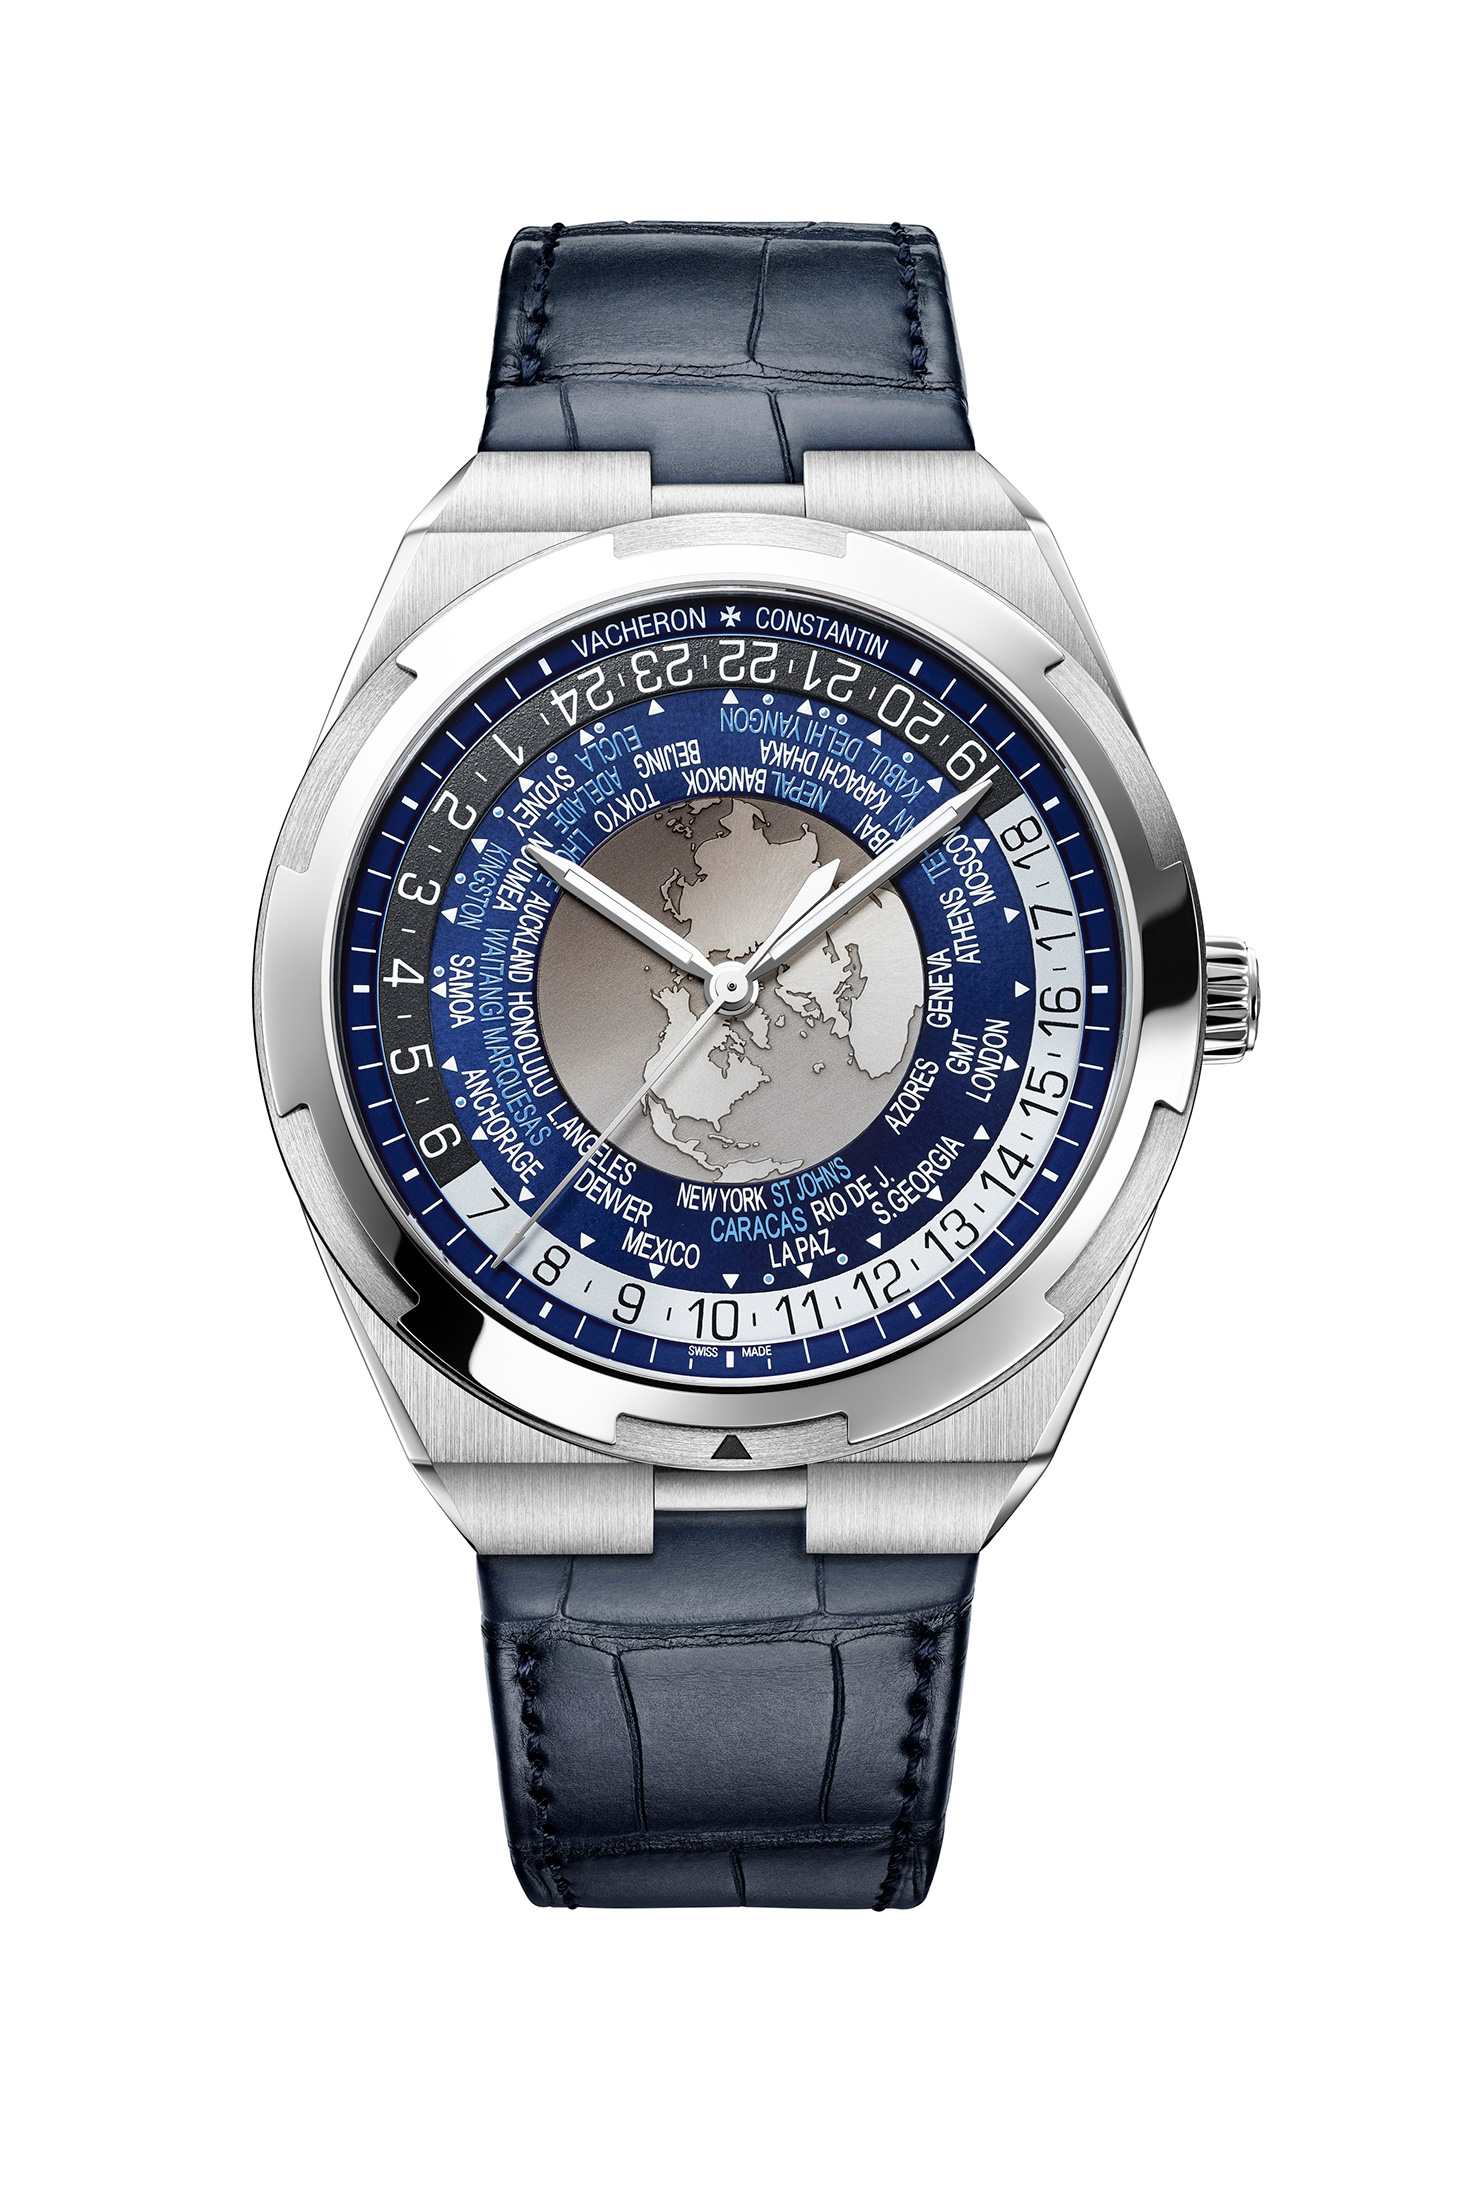 (Photo: Courtesy Vacheron Constantin)